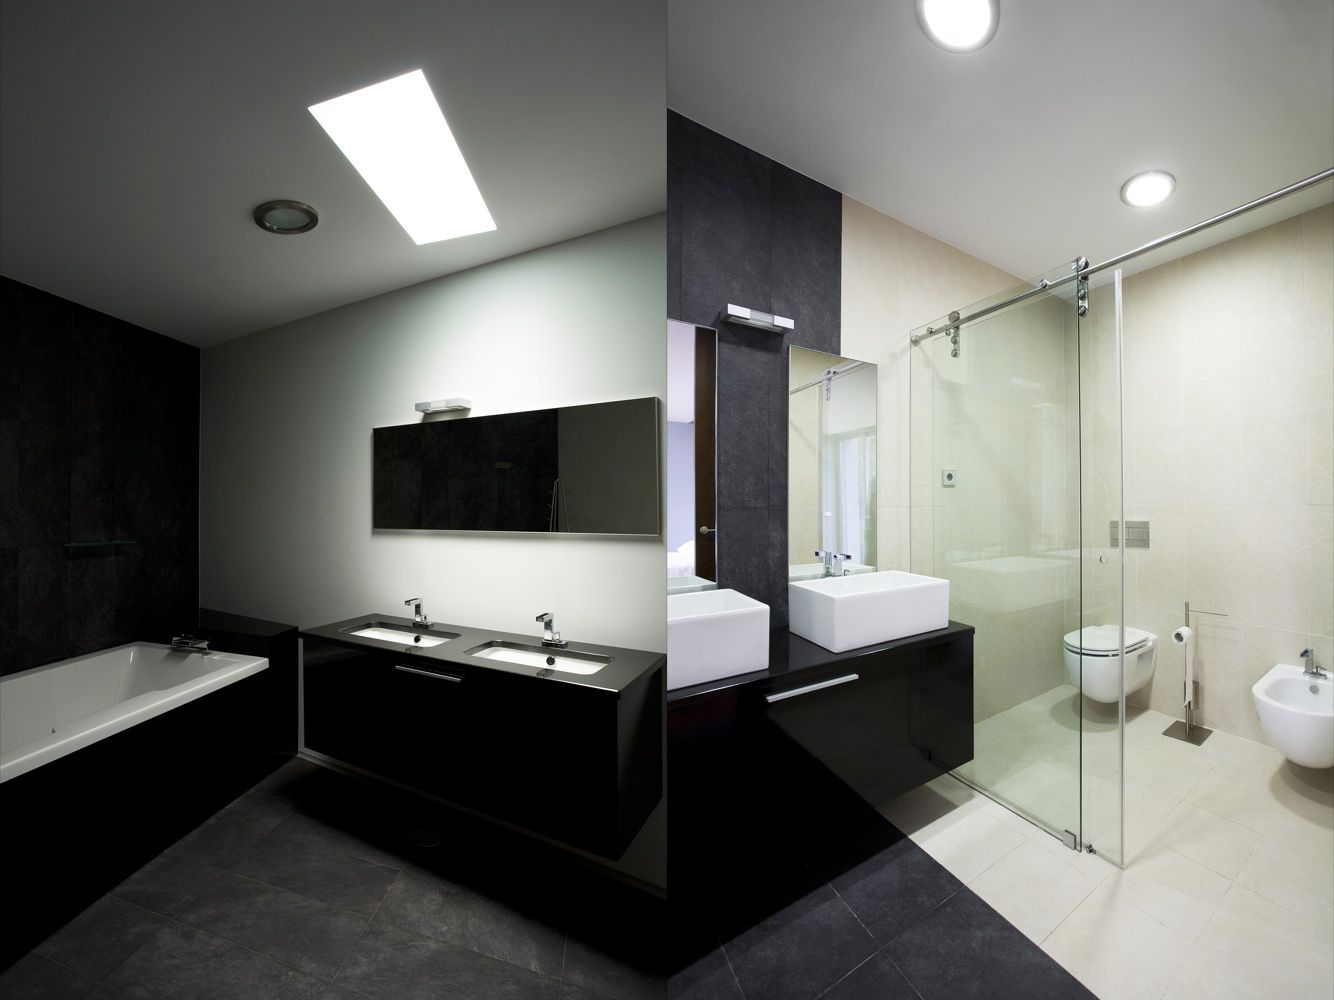 Bathroom Interior Design, Bathroom Interior, Bathroom